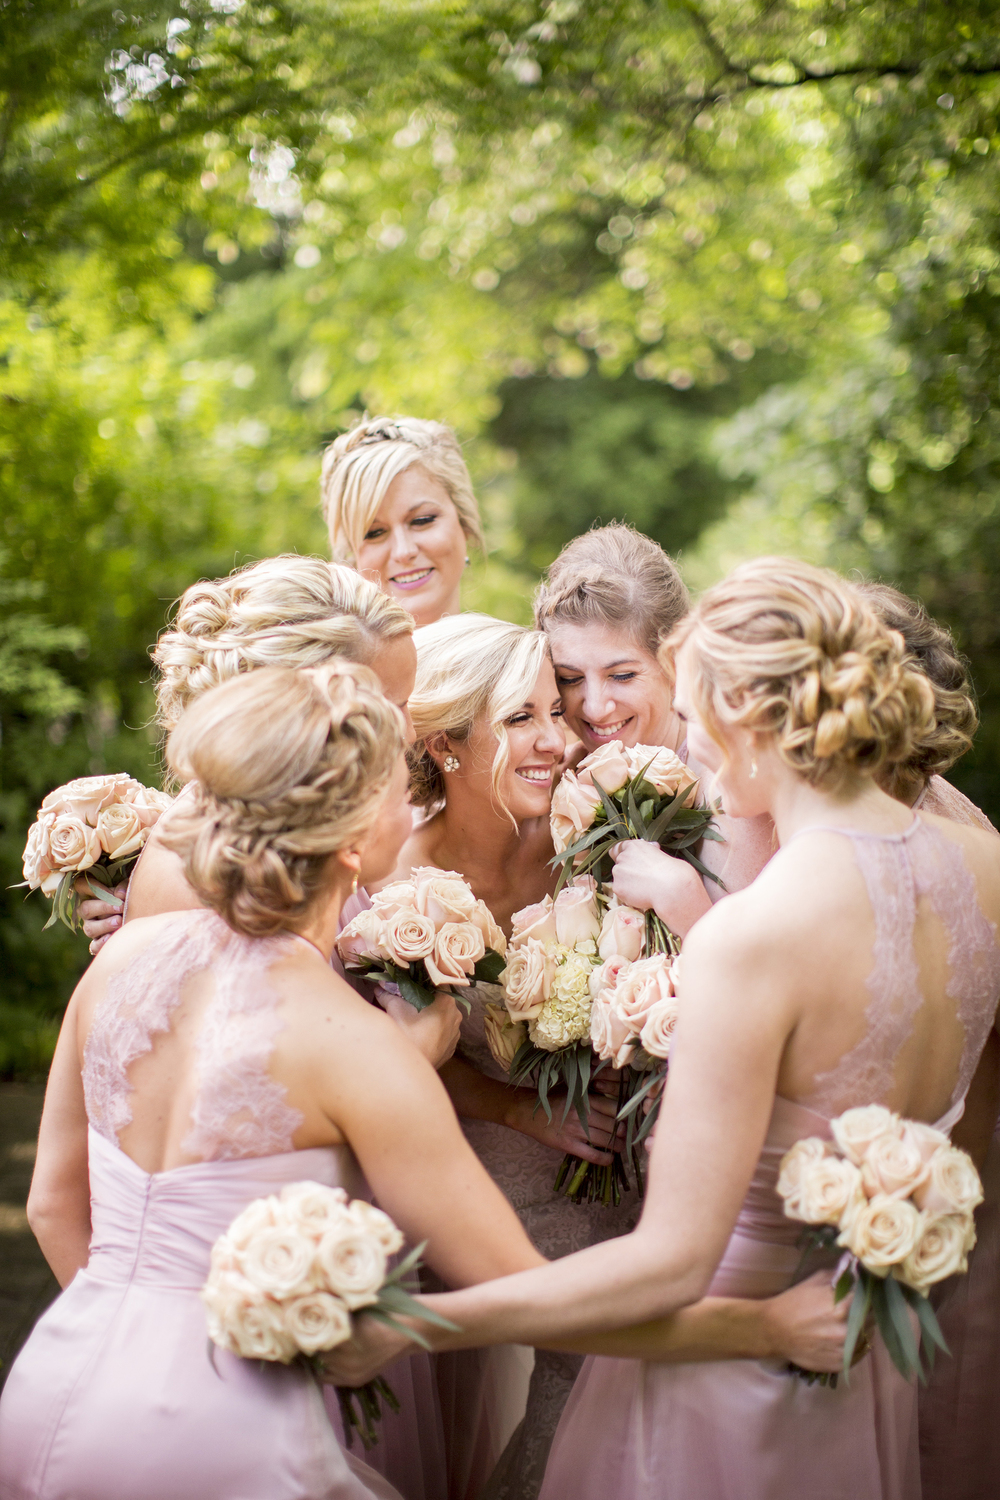 Seriously_Sabrina_Photography_Louisville_Kentucky_Wedding_Whitehall_685.jpg